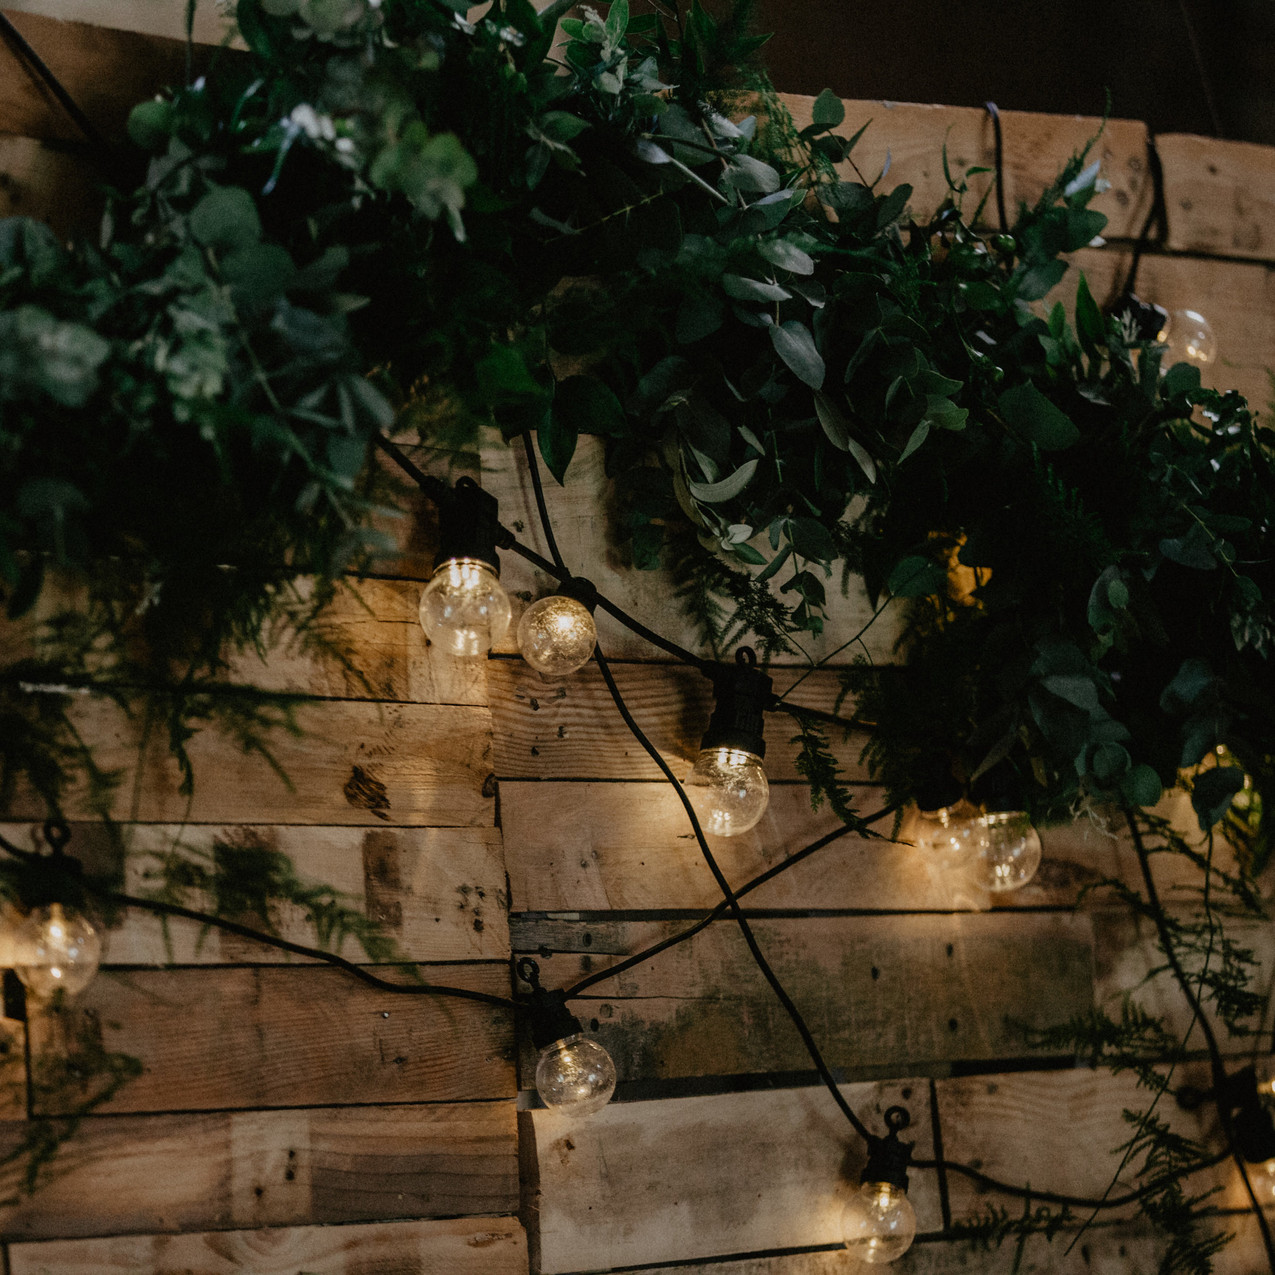 Foliage & styling by Hall & Co